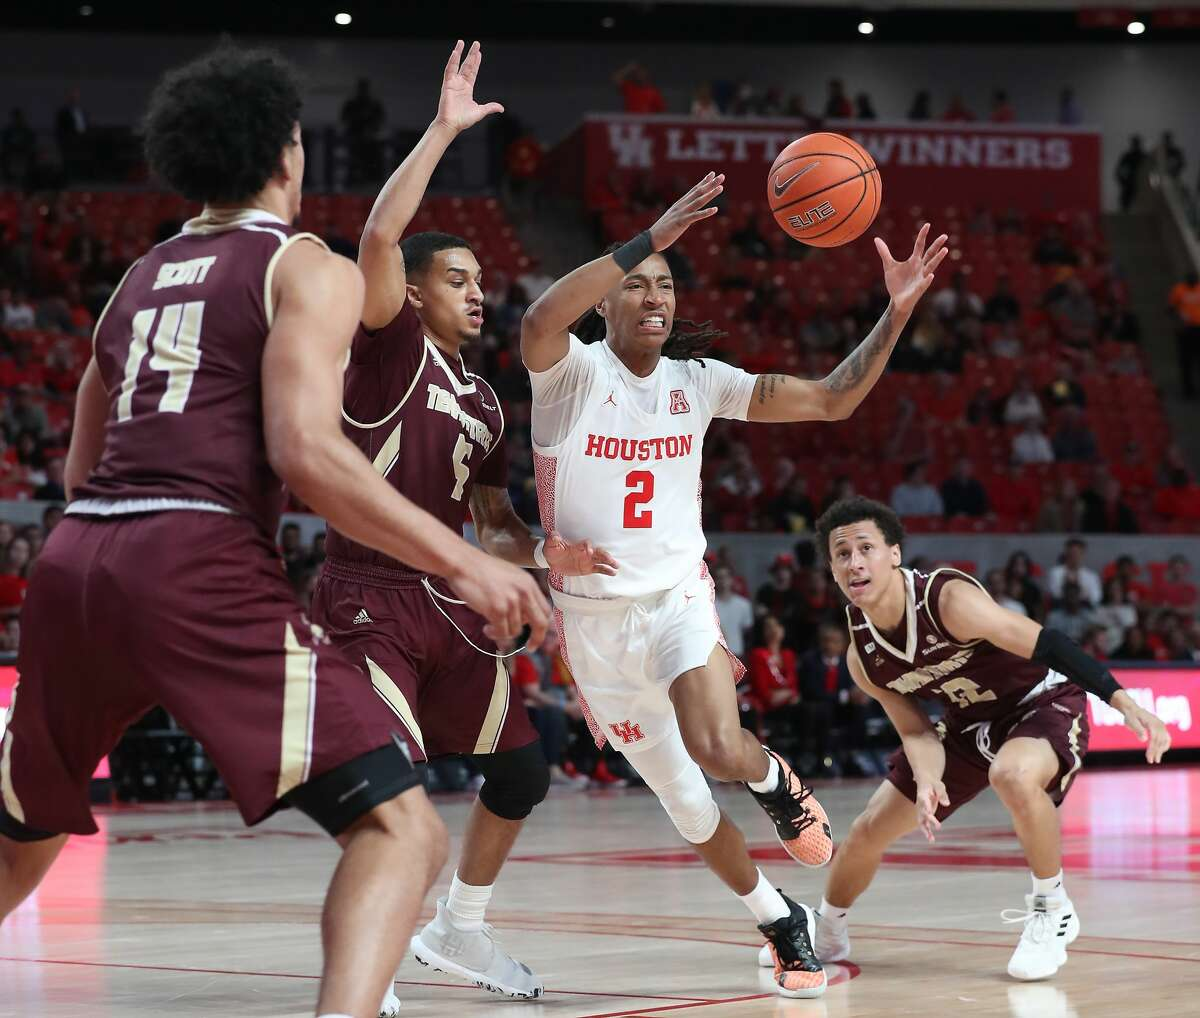 Houston Cougars guard Caleb Mills (2) fights for a loose ball through Texas State Bobcats defenders during the first half of an NCAA basketball game at Fertitta Center Wednesday, Dec. 4, 2019, in Houston.